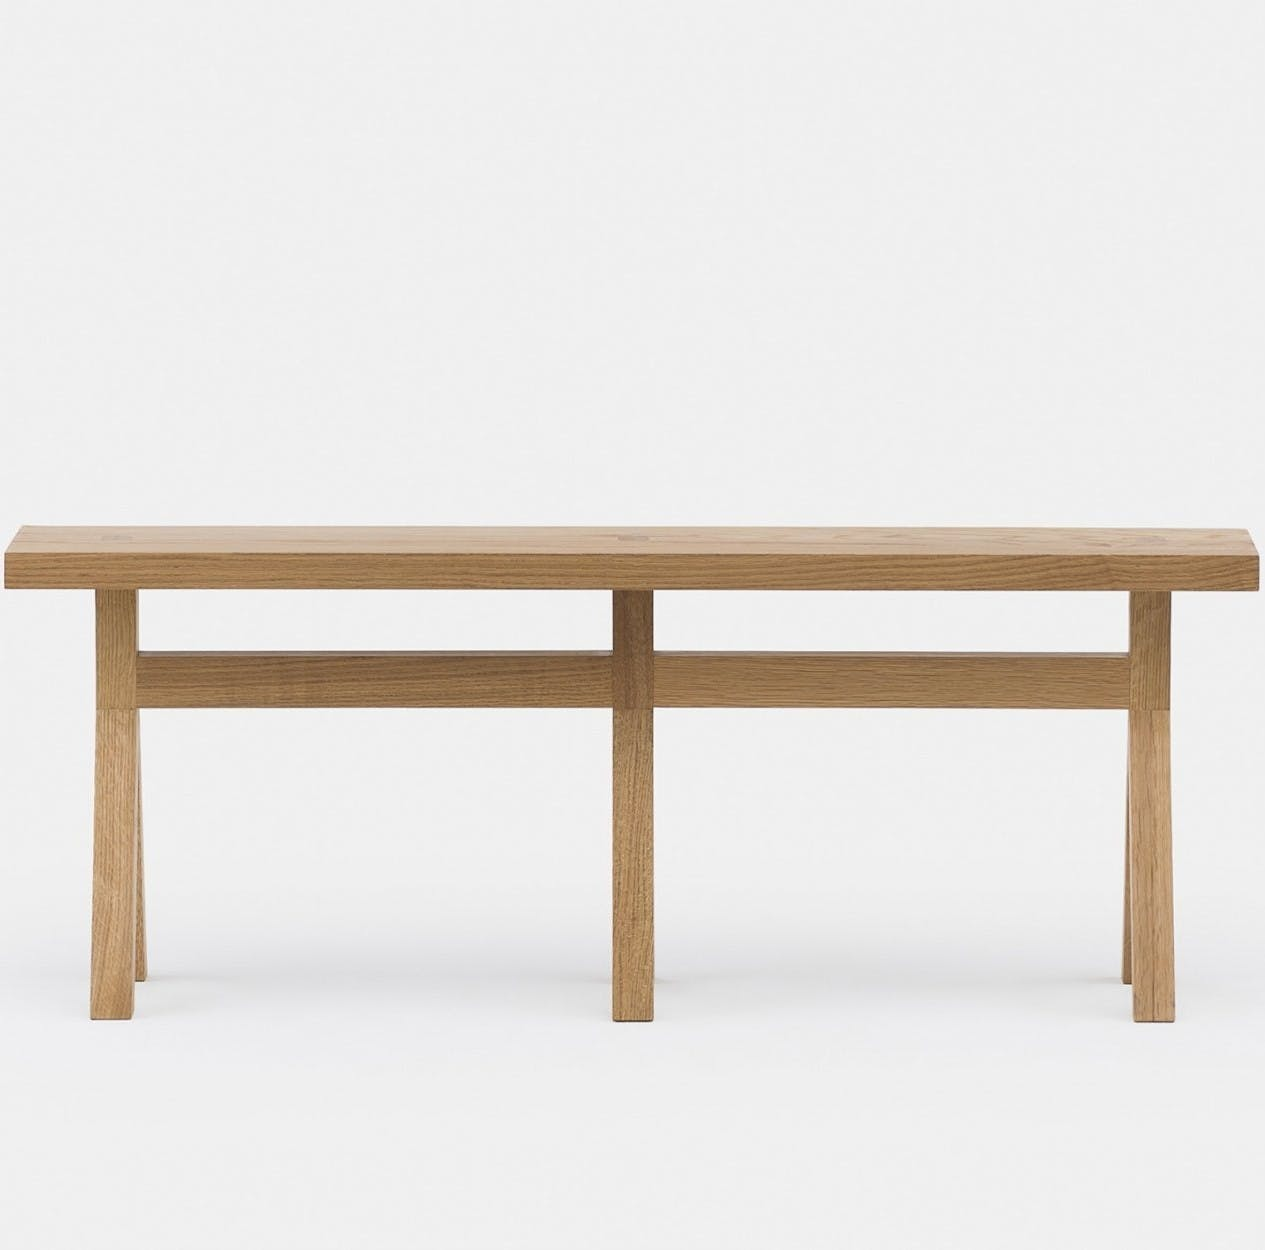 771 Commune Bench By Nerihu In Danish Oiled Oak Frontweb 1840X1250